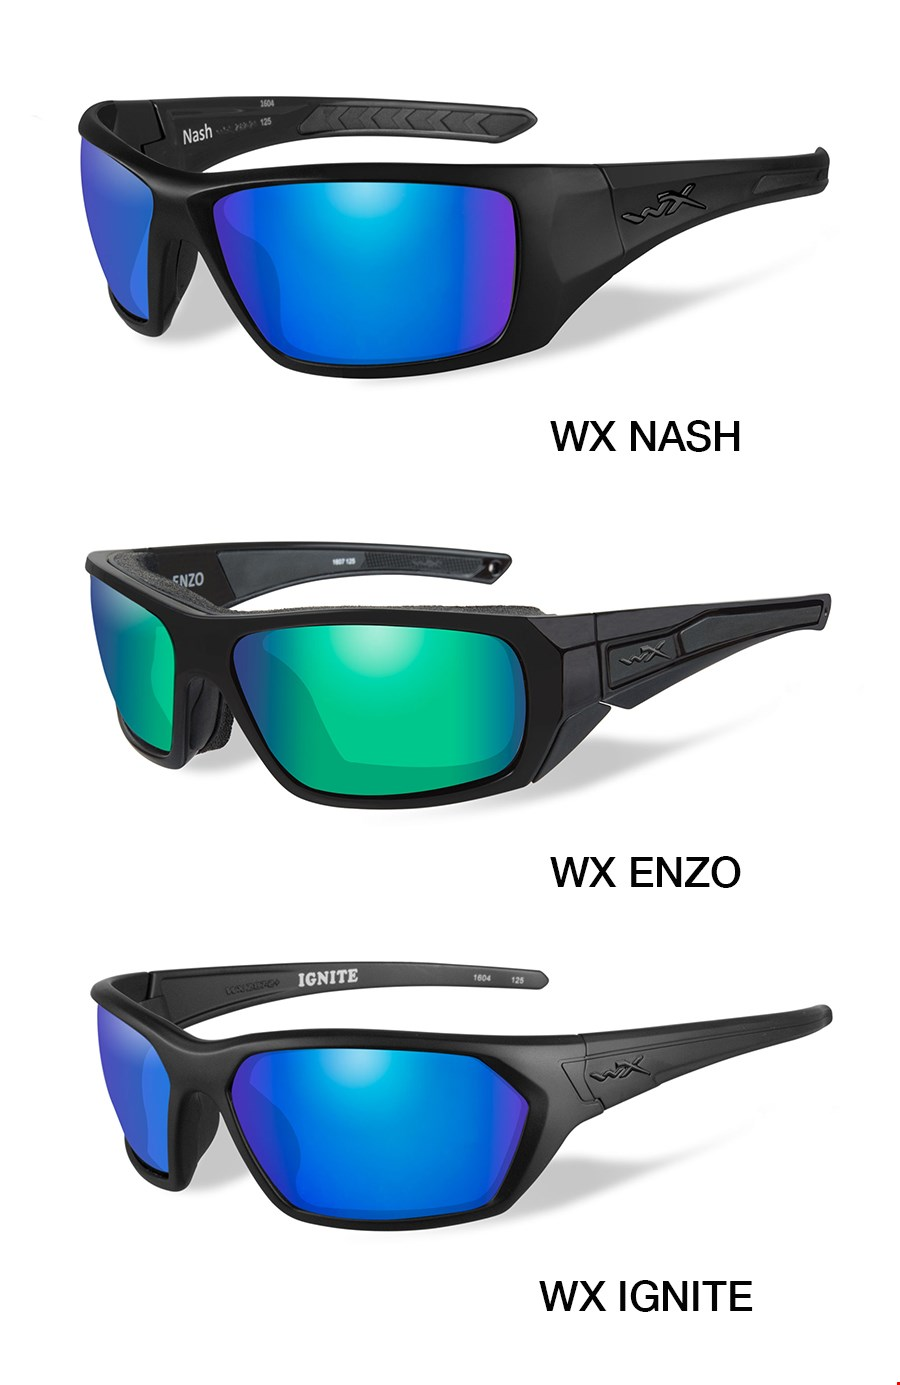 bf18d14c0c WILEY X® DEBUTS NEW PREMIUM EYEWEAR STYLES TO FISHING INDUSTRY AT ...